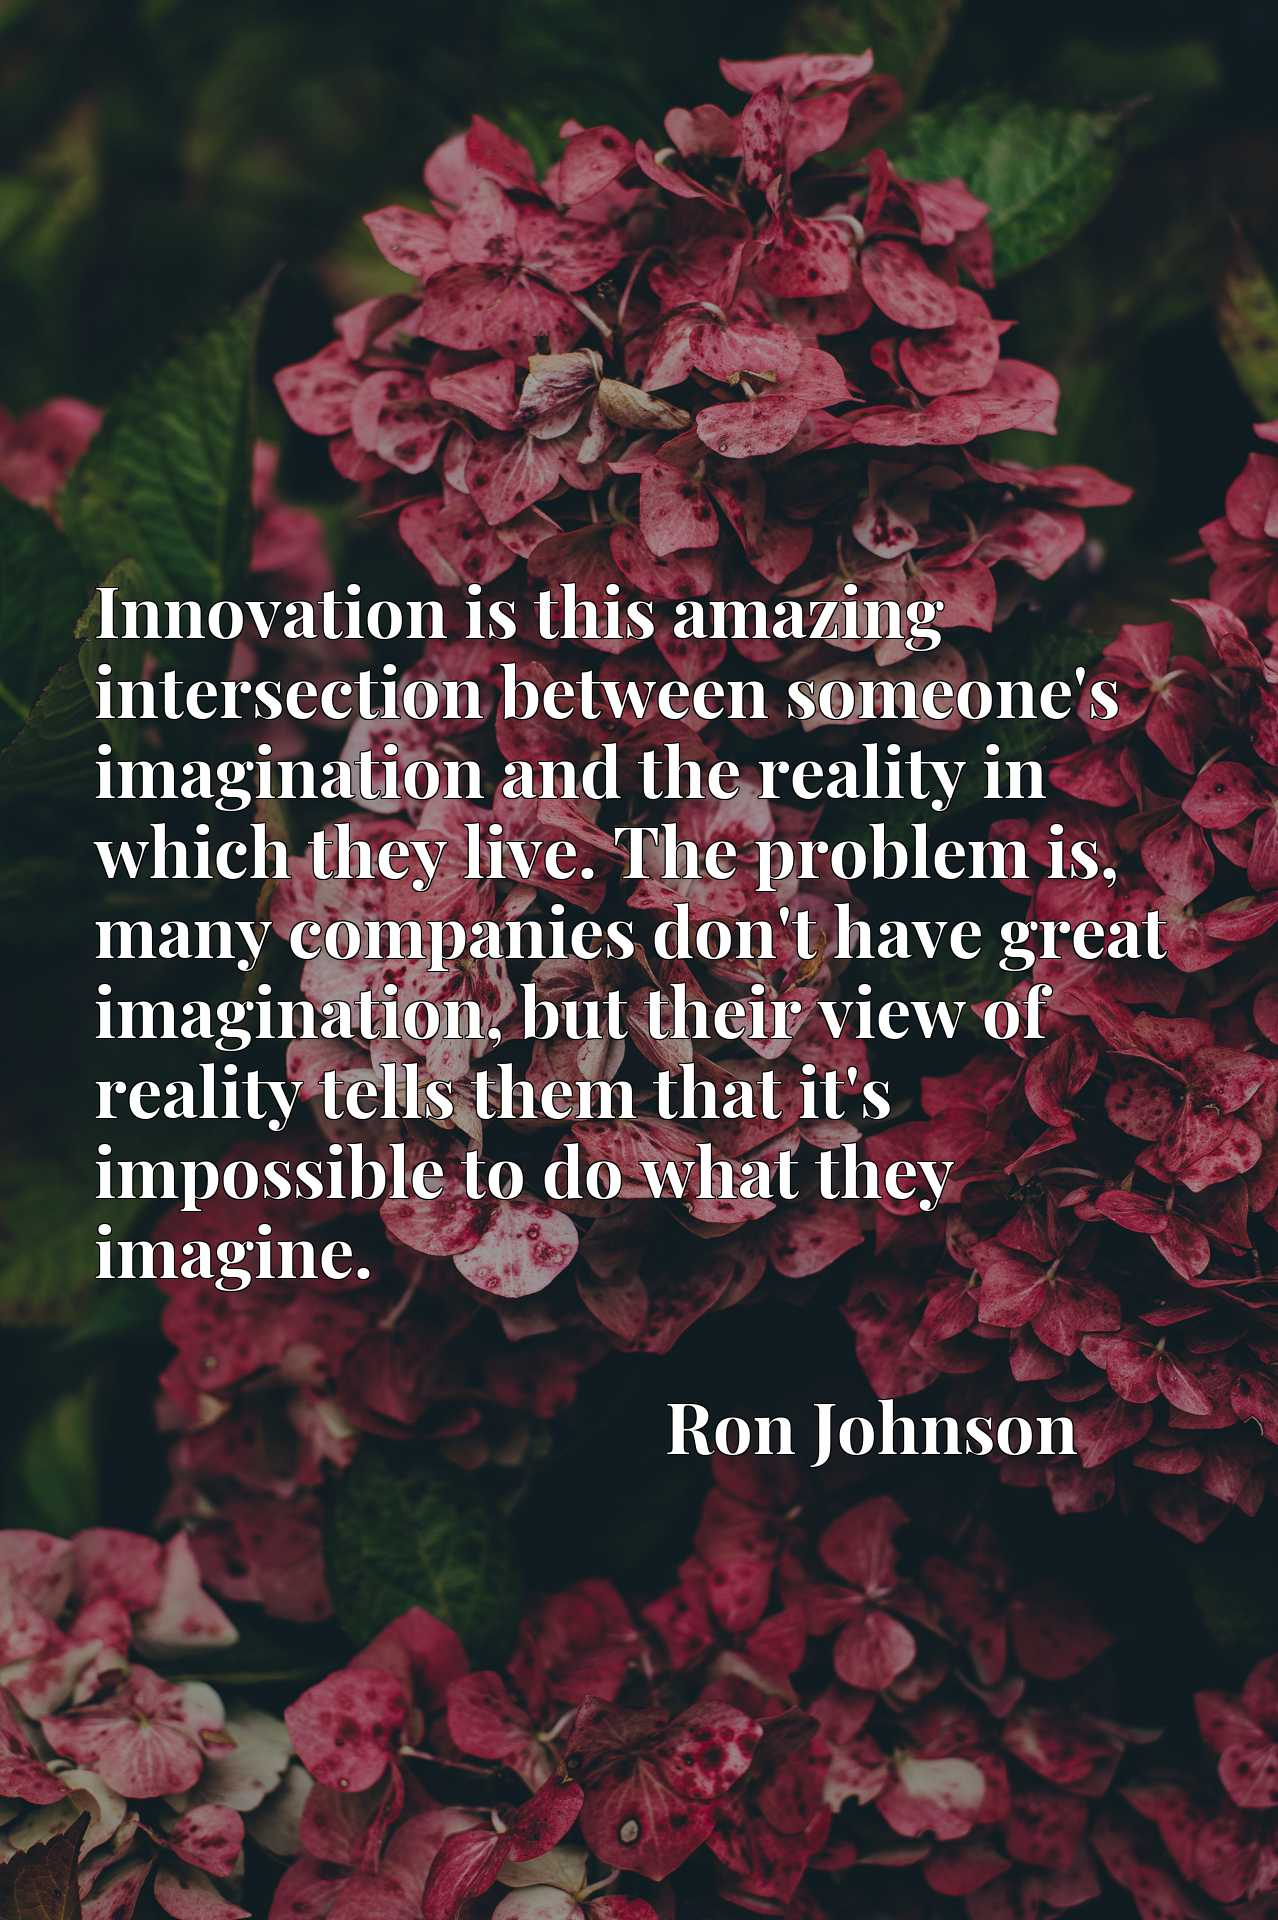 Innovation is this amazing intersection between someone's imagination and the reality in which they live. The problem is, many companies don't have great imagination, but their view of reality tells them that it's impossible to do what they imagine.